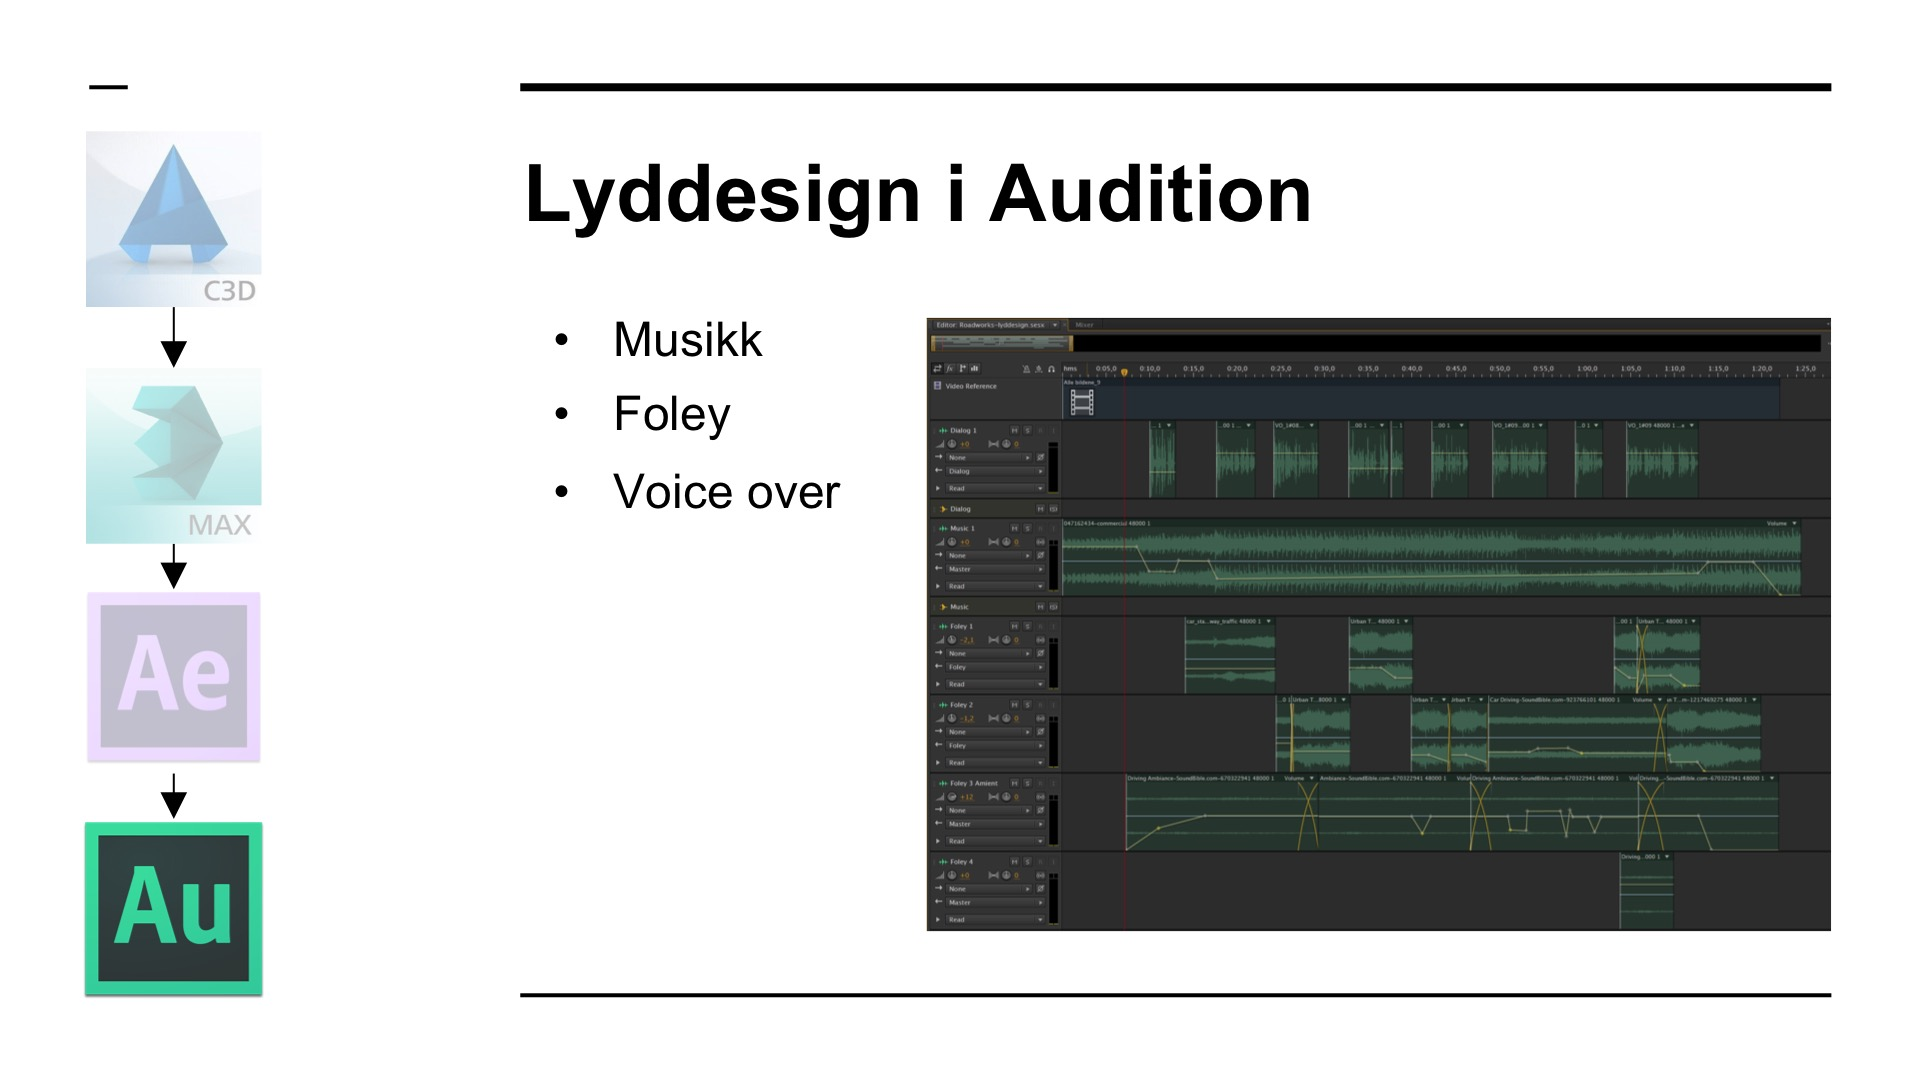 Lyddesign i Audition.